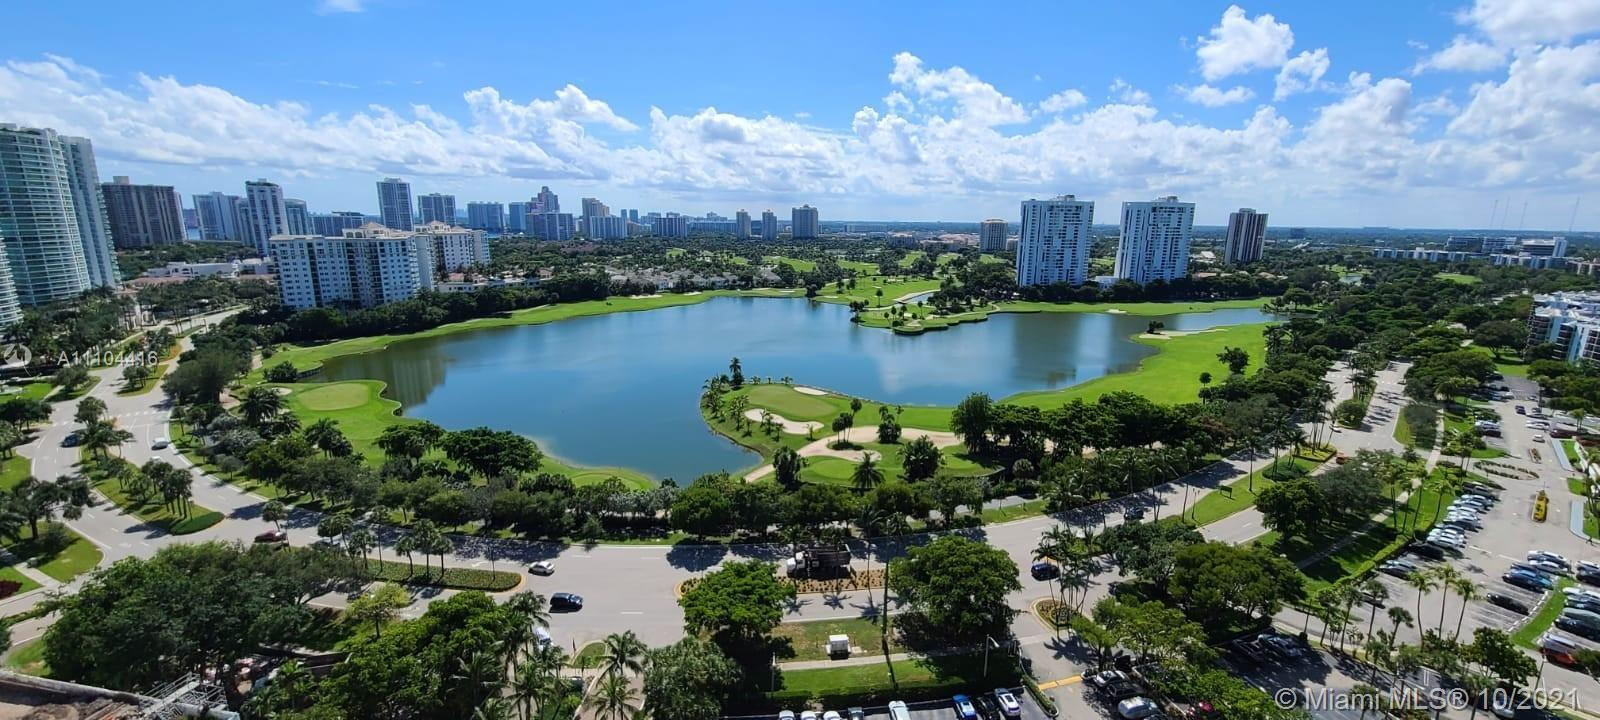 FANTASTIC PENTHOUSE RESIDENCE IN THE HEART OF AVENTURA! THIS PENTHOUSE OFFERS EXTRA HIGH CEILINGS AN